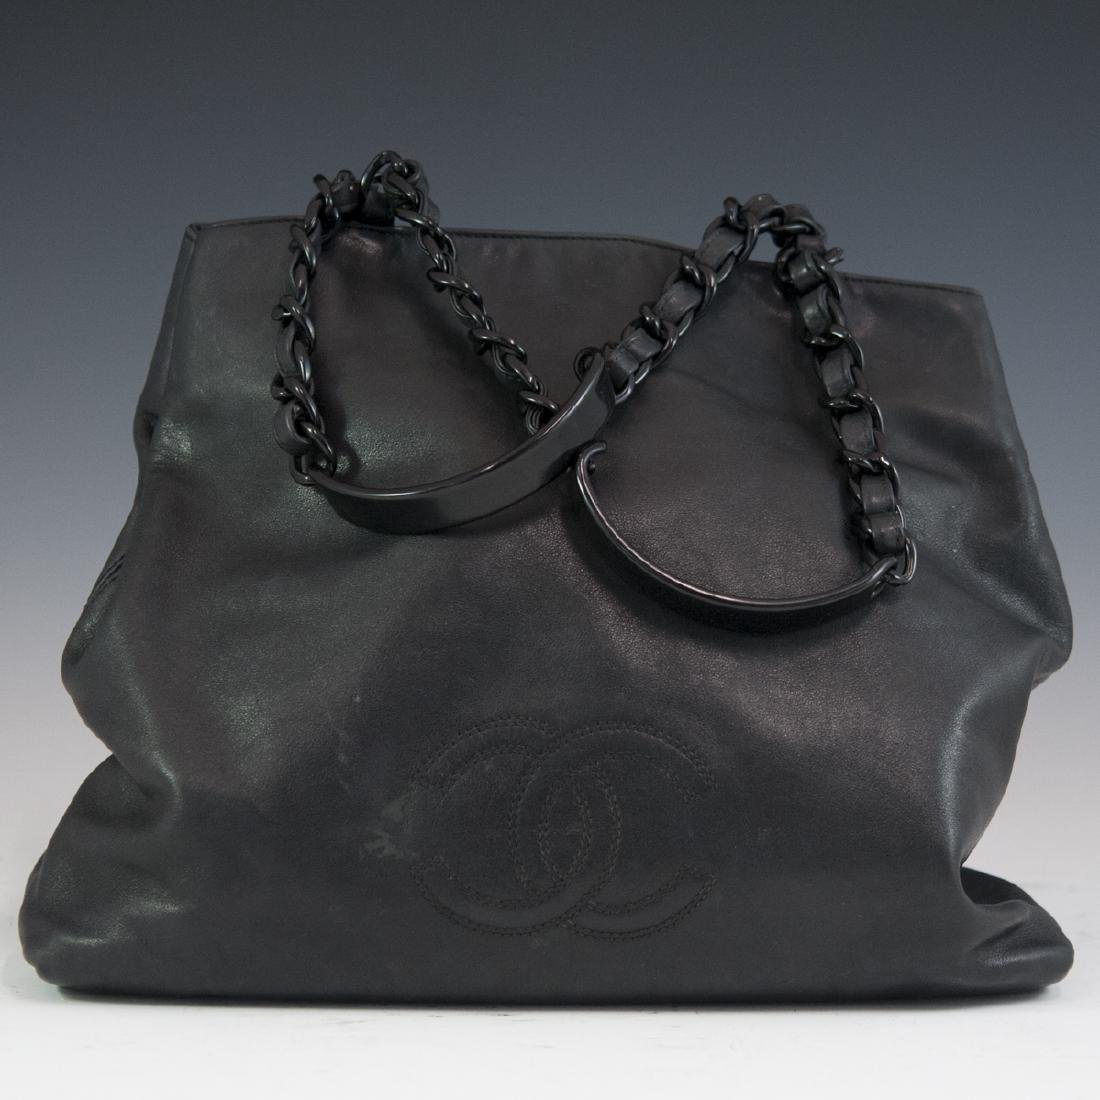 Chanel Black Leather Tote Bag